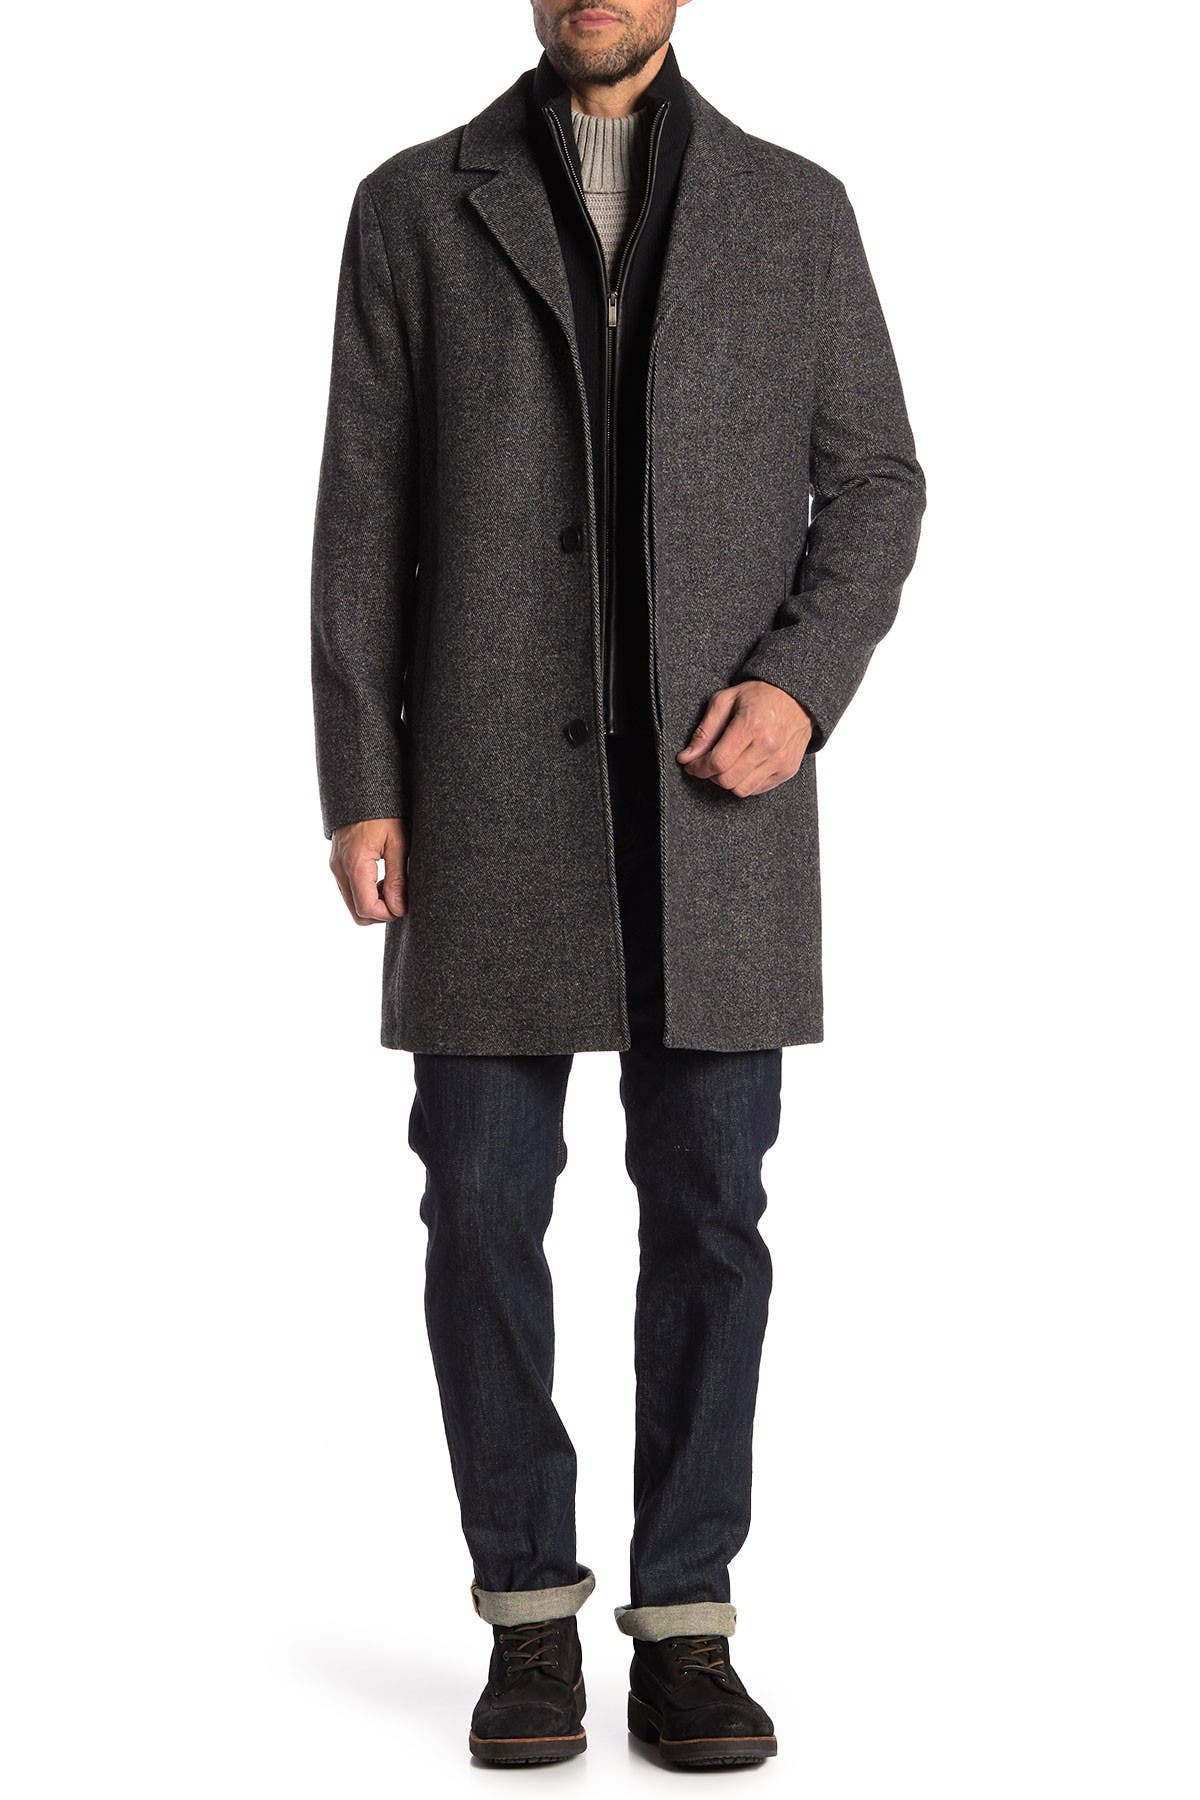 Image of Cole Haan Wool Blend Leather Trim Bib Insert Coat